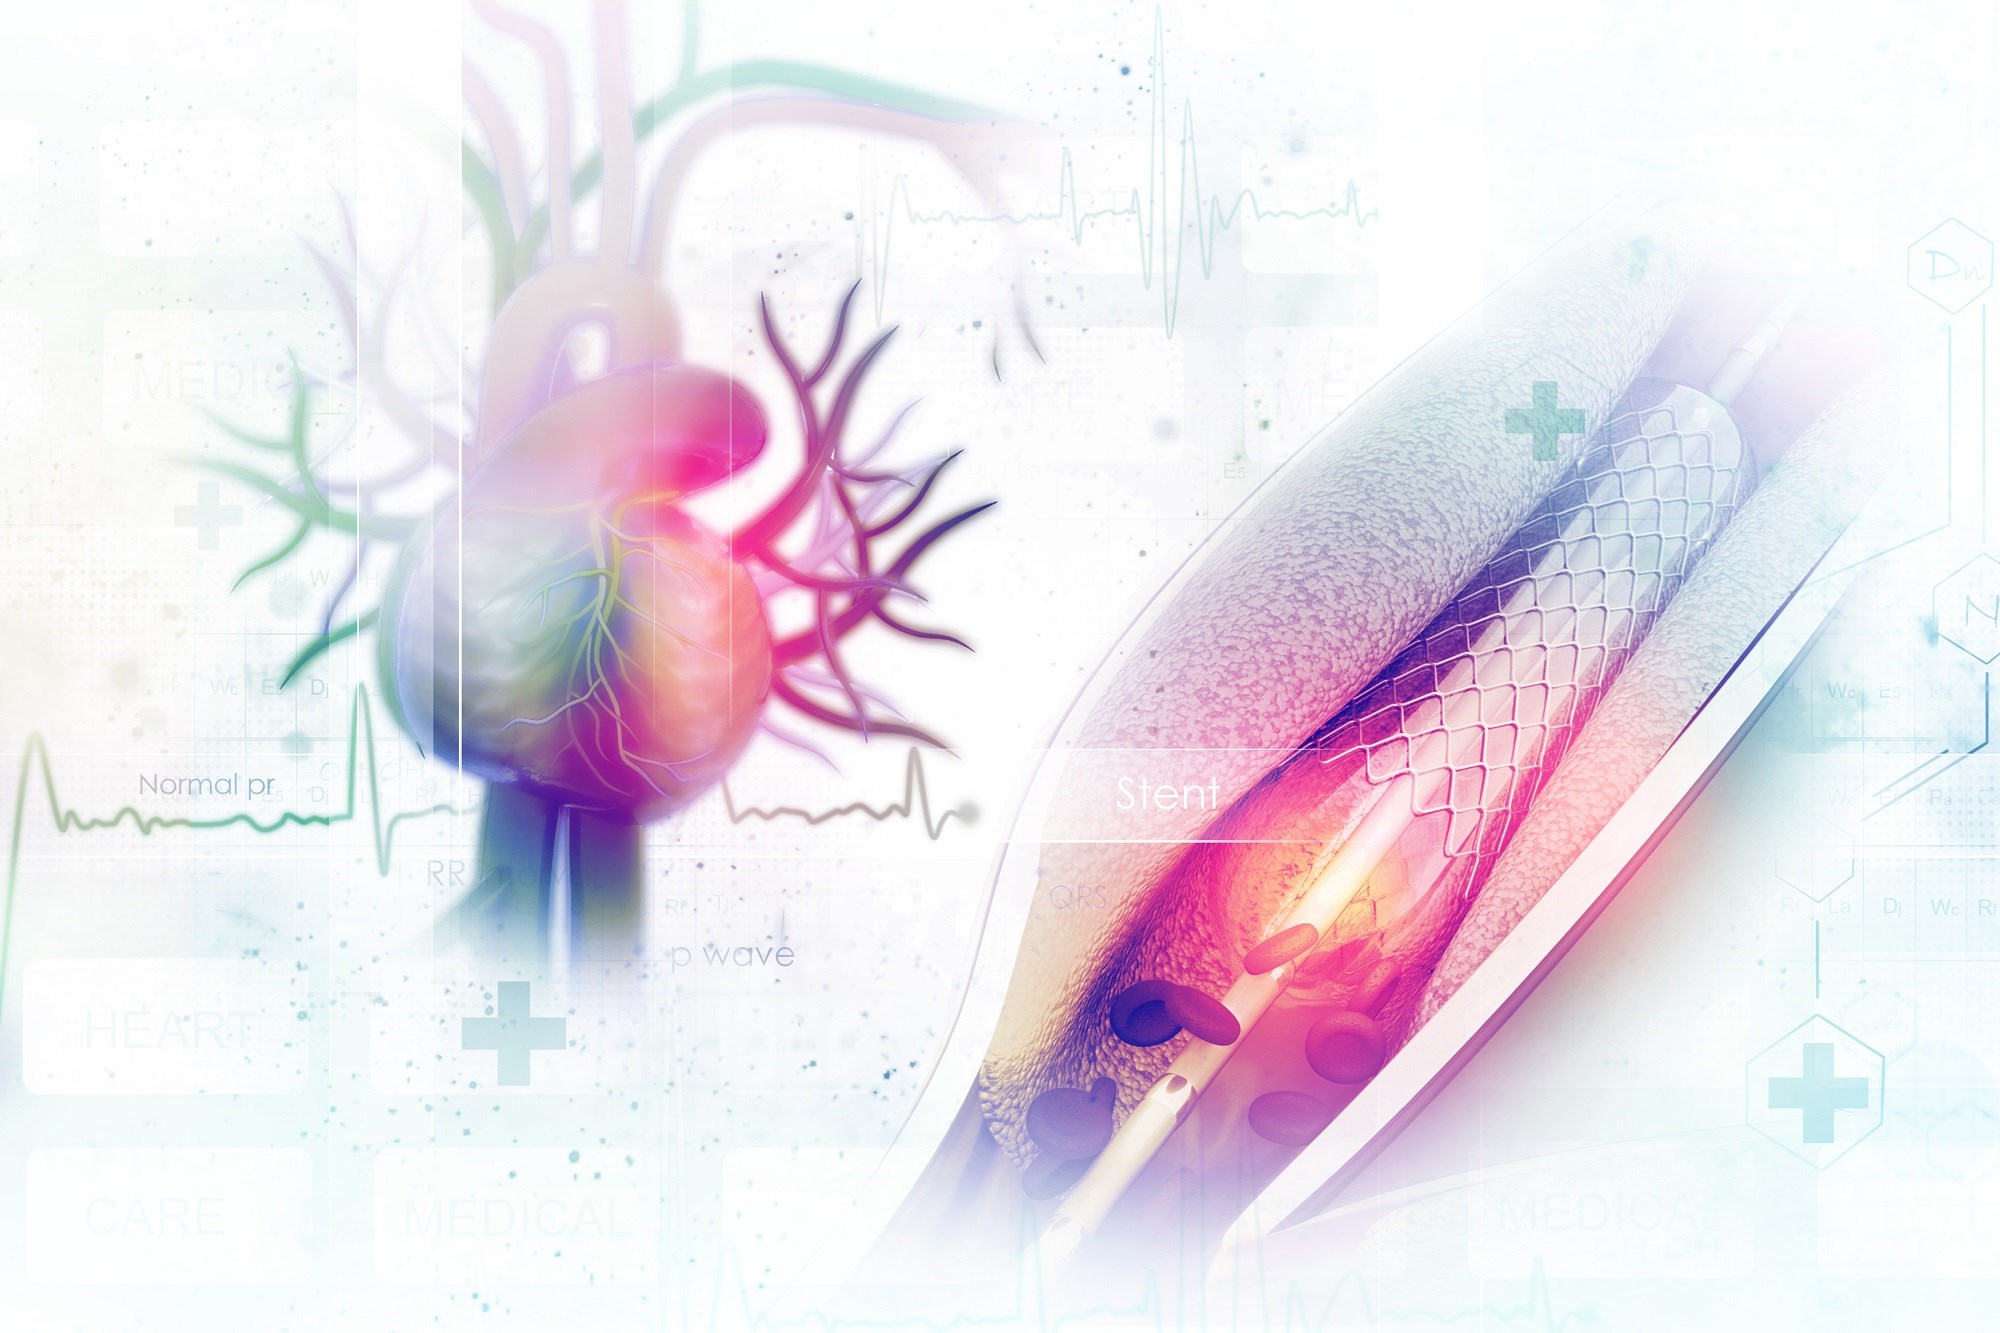 The 30-day and 5-year stroke rates were compared between CABG and PCI.